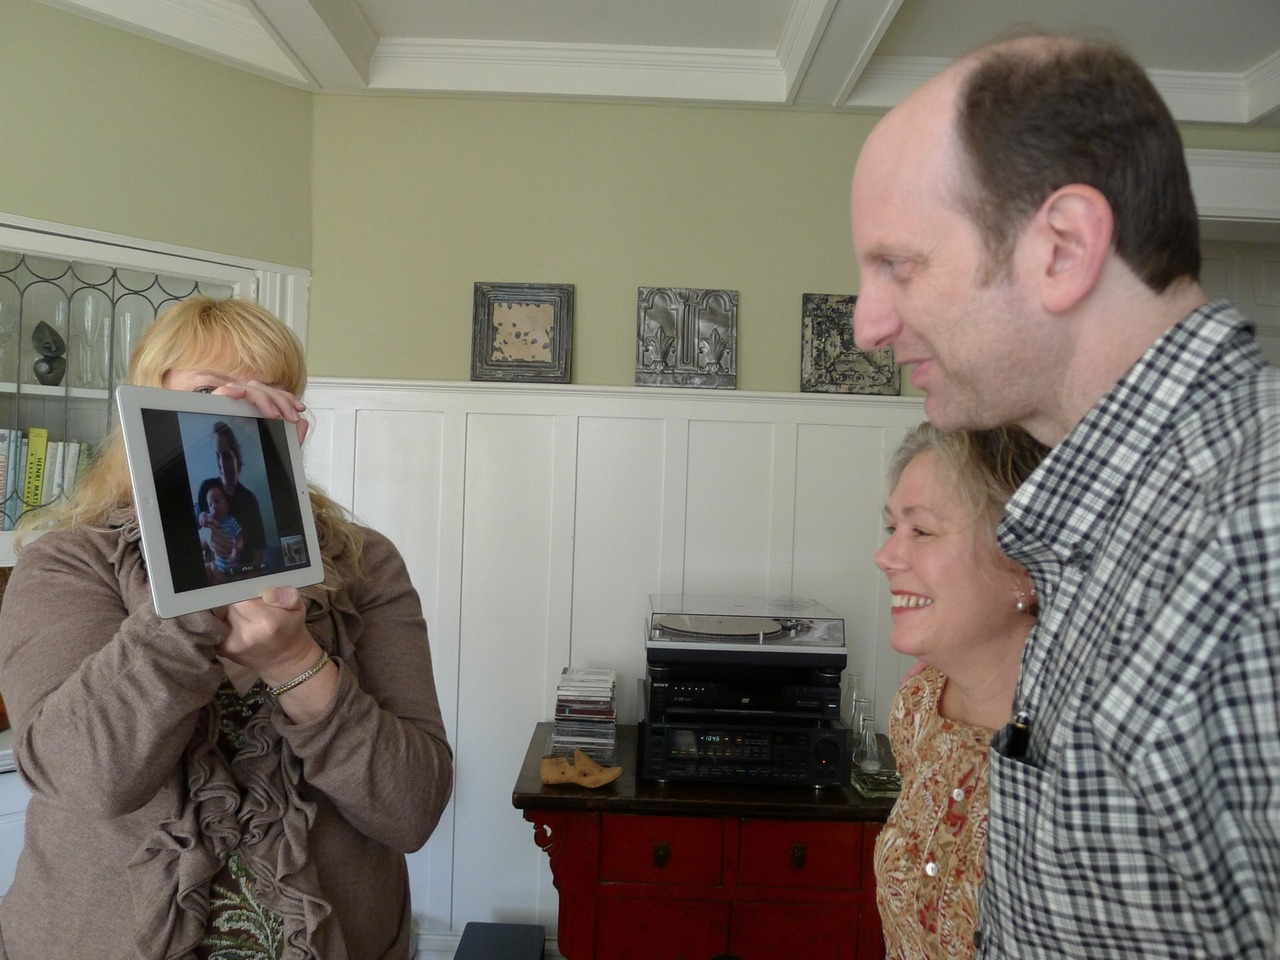 Pop takes photos: Pop was in San Francisco to celebrate my brother's birthday.  We could not attend, given the infant, so we face-timed it in.  Pop took photos of said face-timing. Yes, I am aware that we are all one giant Apple advertisement. The image is so meta, my head might explode.  Now, consider me posting the photo that Pop took of my brother talking to me, and we are really getting in to Ouroboros territory.